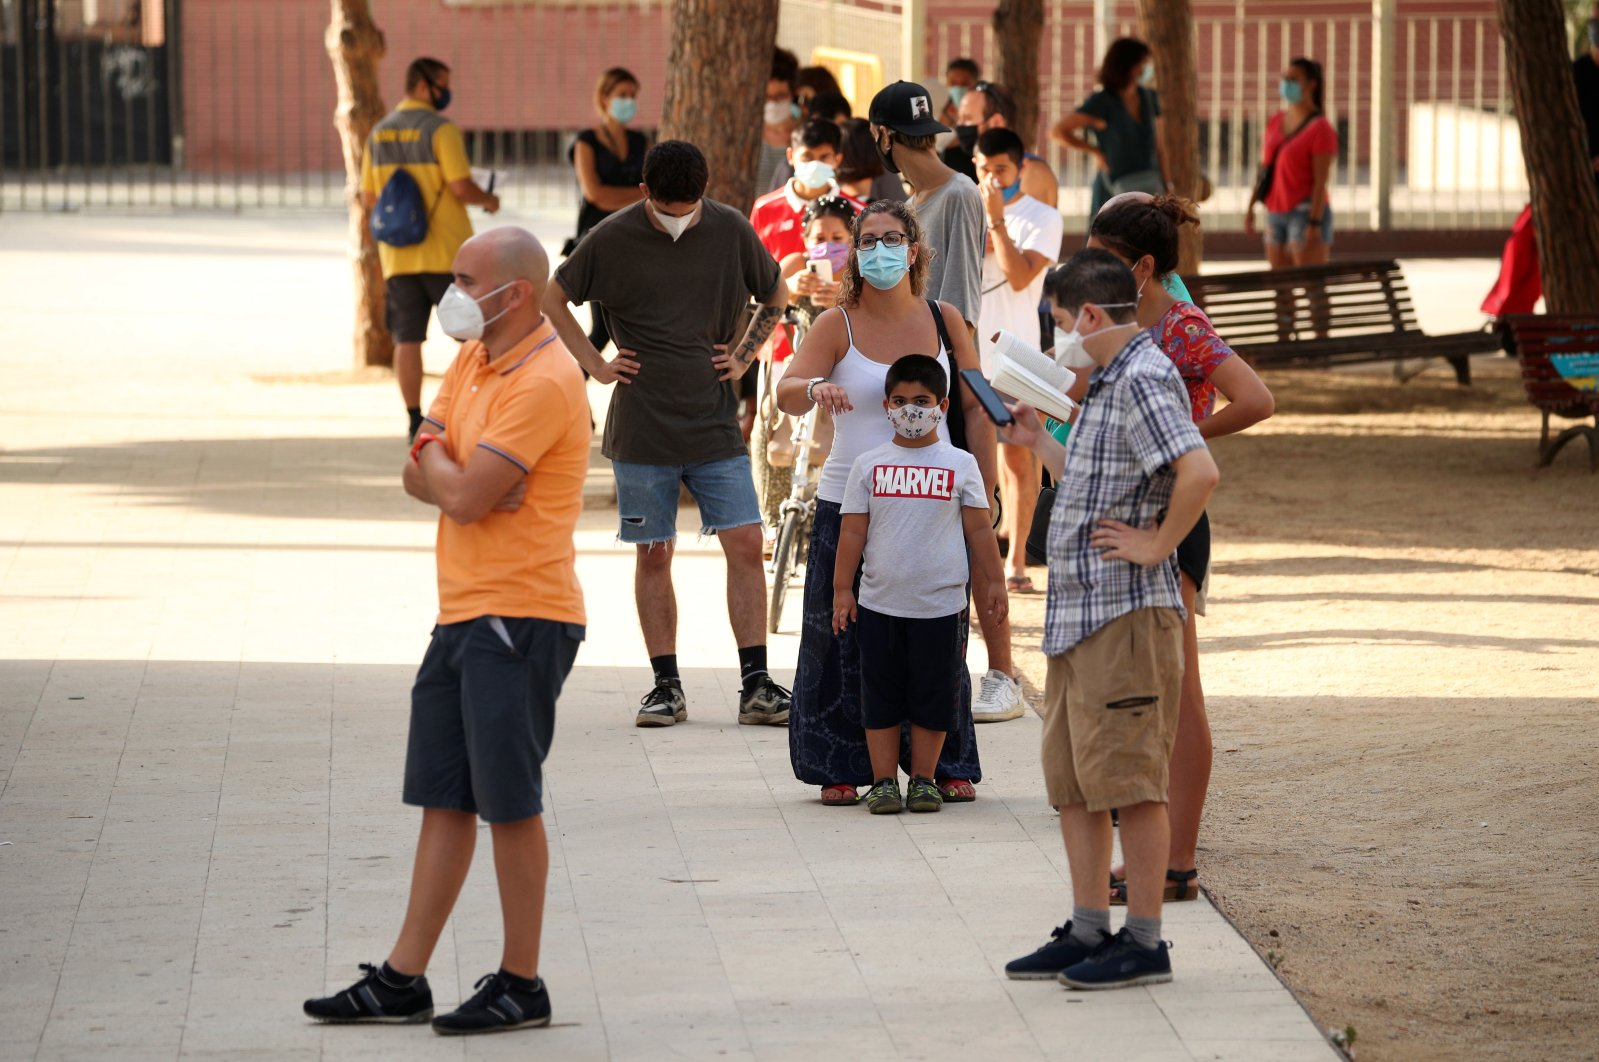 People queue to get tested for the coronavirus at Hospitalet del Llobregat in Barcelona, Spain, Aug. 21, 2020. (Reuters Photo)